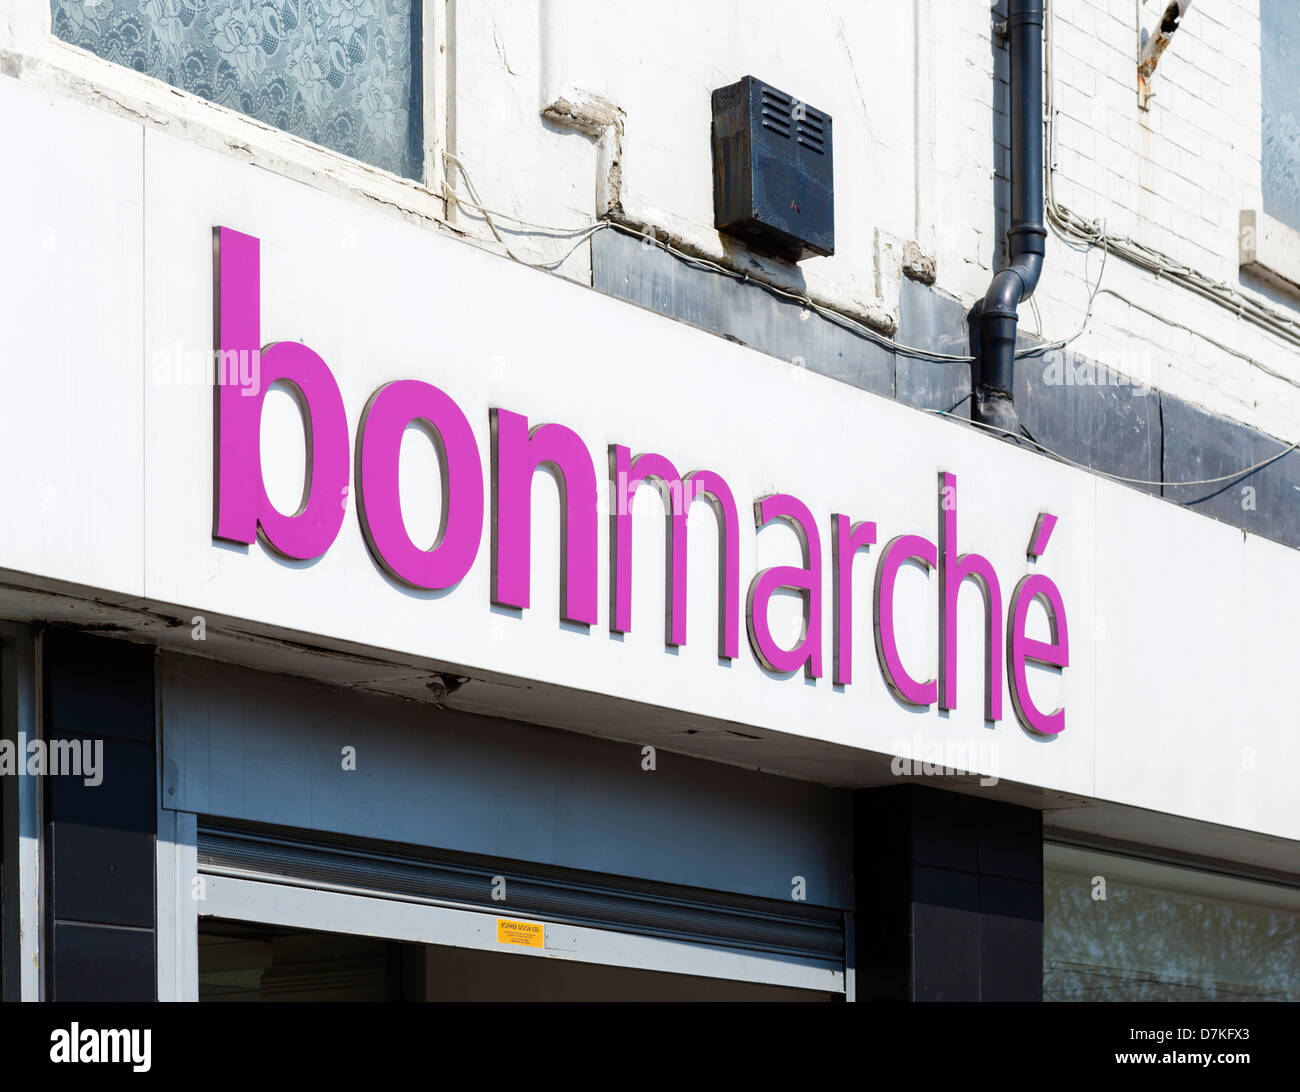 Bonmarche Store In Doncaster, South Yorkshire, England, UK